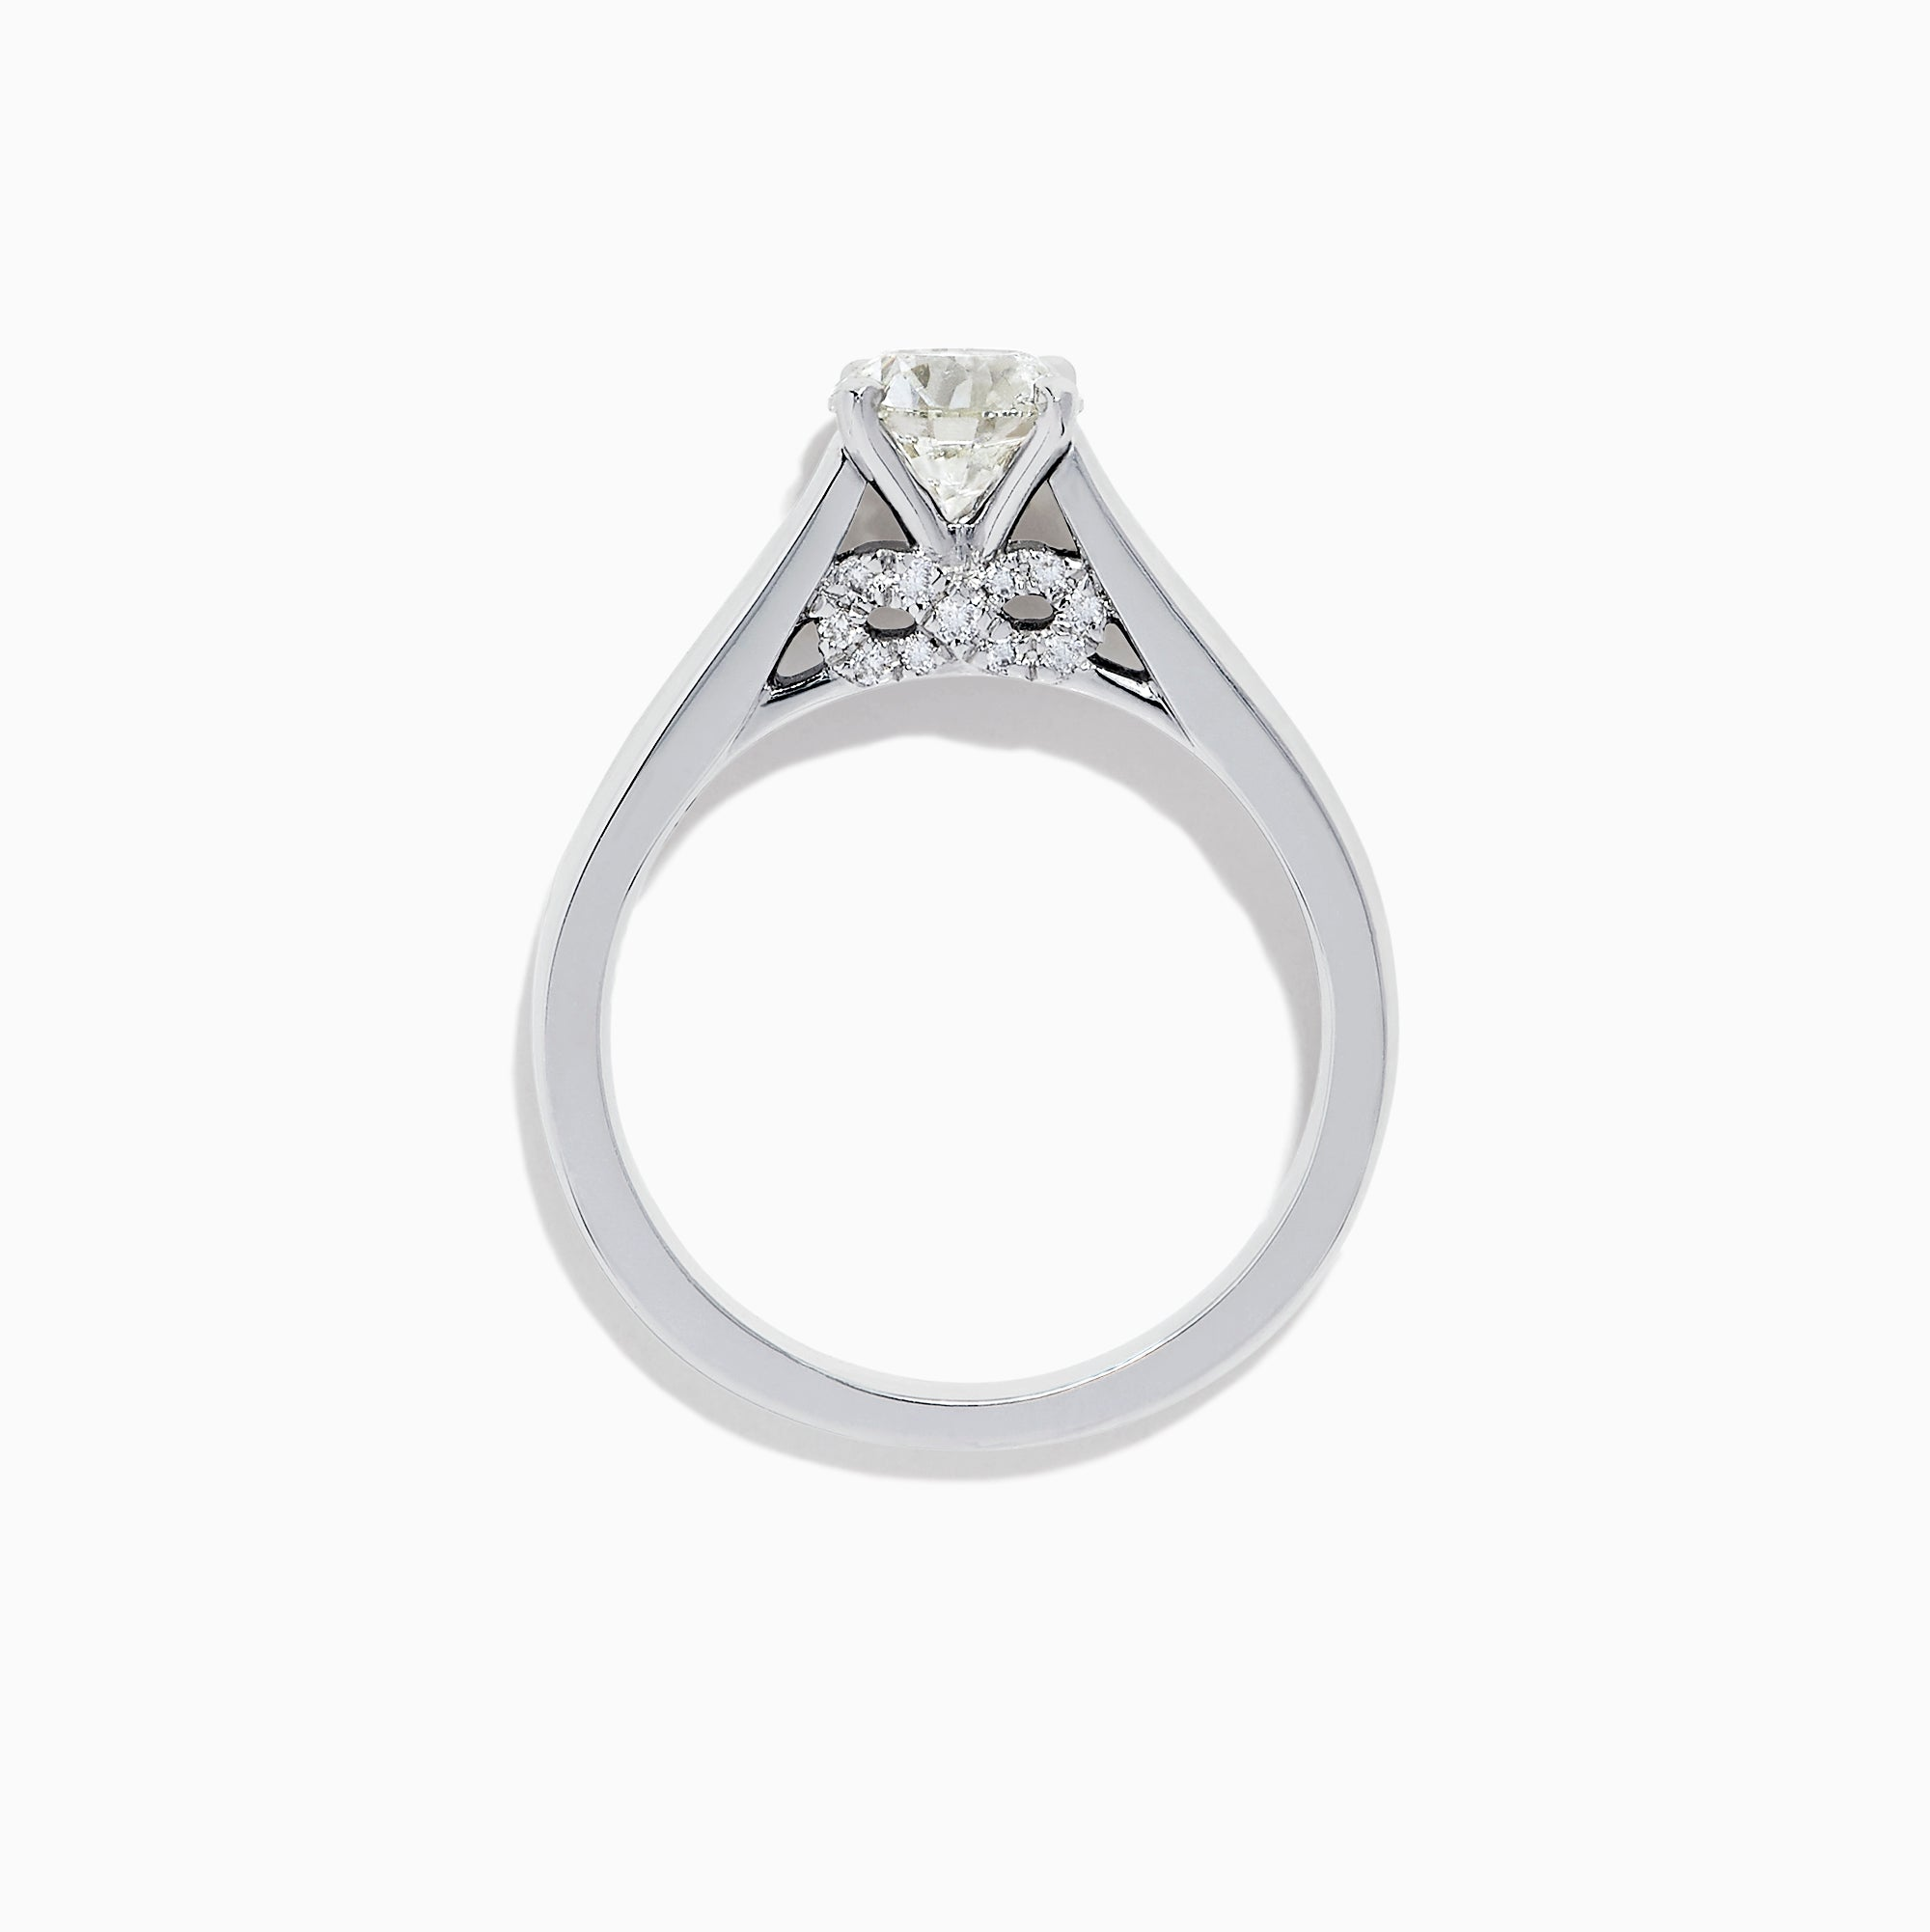 Effy Bridal 18K White Gold Diamond Solitaire Ring, 1.08 TCW